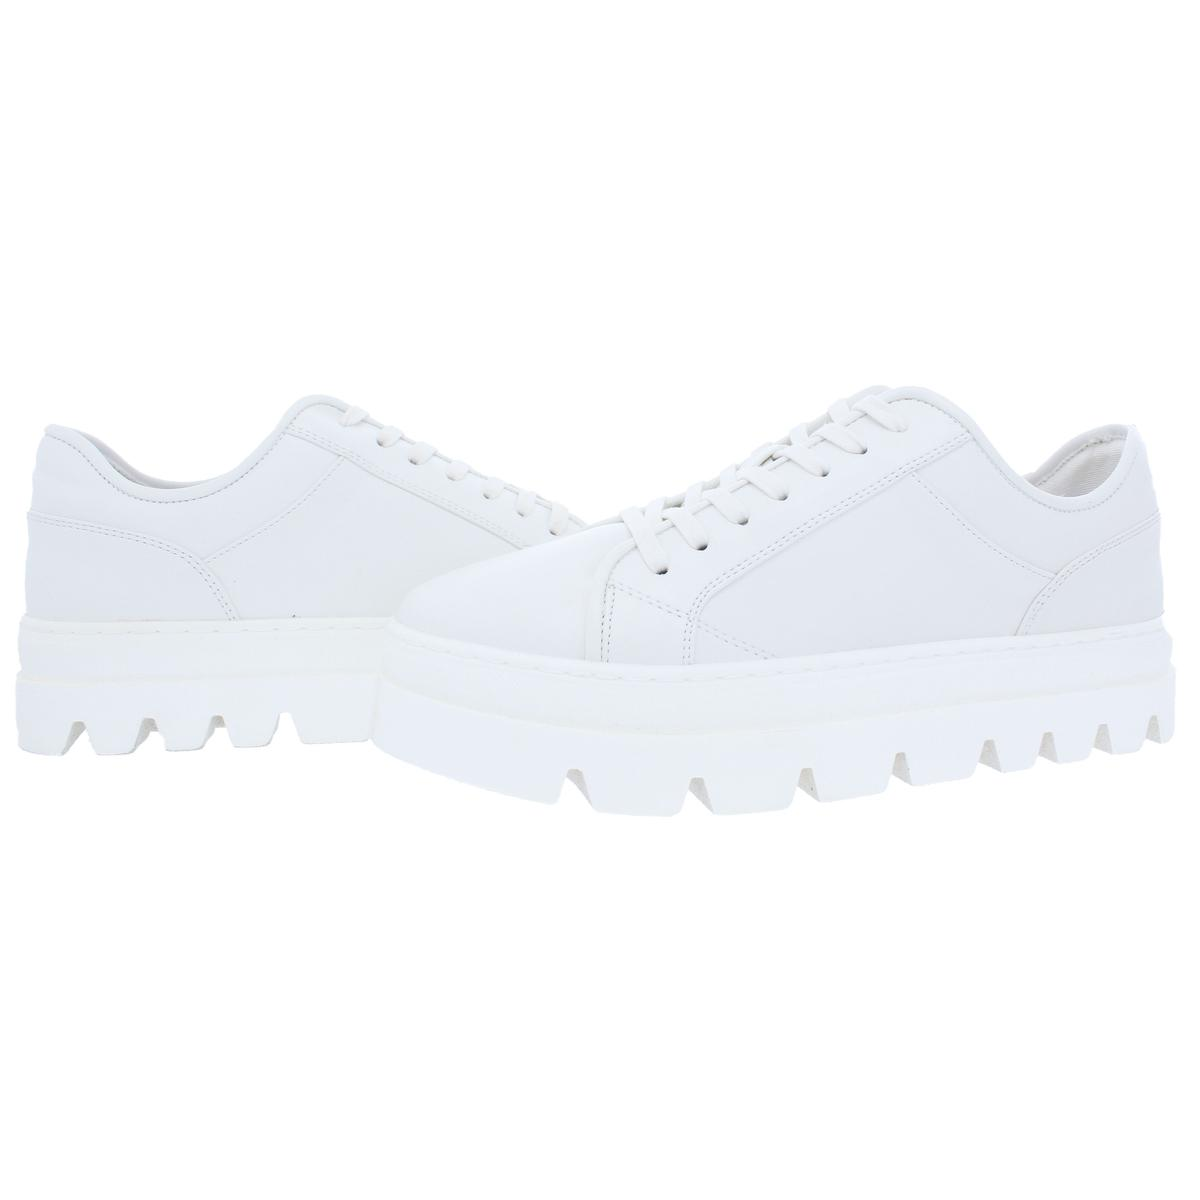 Steve-Madden-Kickstart-Women-039-s-Faux-Leather-Fashion-Lace-Sneaker-Shoes thumbnail 9